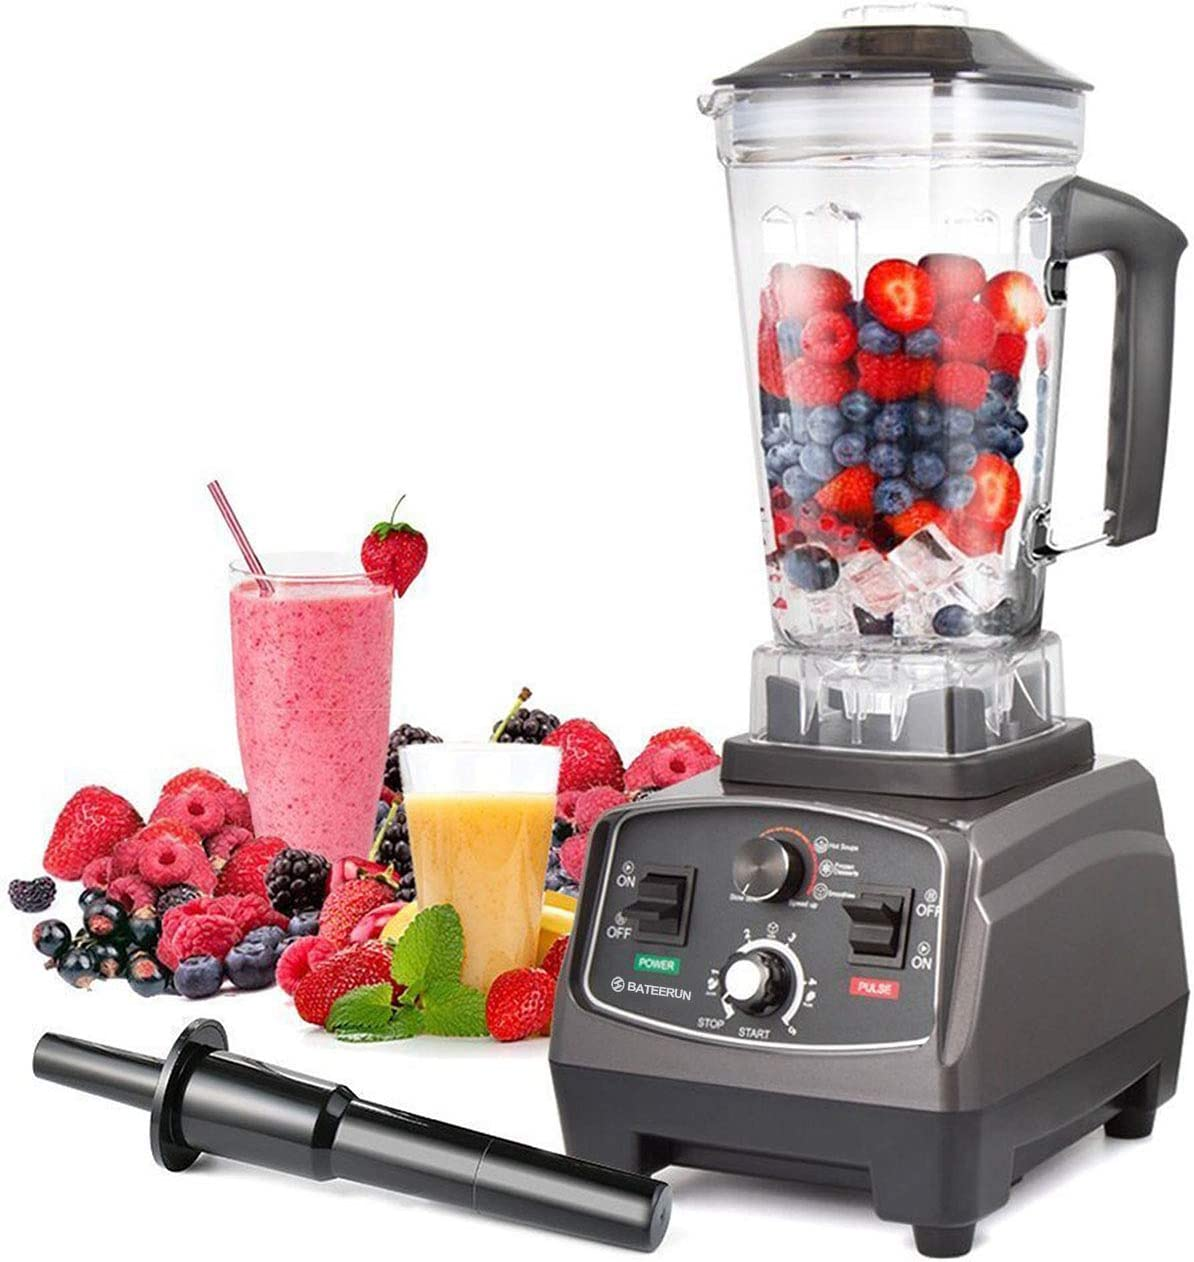 Blender Professional Countertop Blender, 2000W High Speed Smoothie Blender/Mixer for Shakes and Smoothies, commercial blender Crusing Ice, Frozen Desser with Timer, 68OZ BPA-Free Tritan Jar, Smoothie Maker Grey BATEERUN (Model_2)